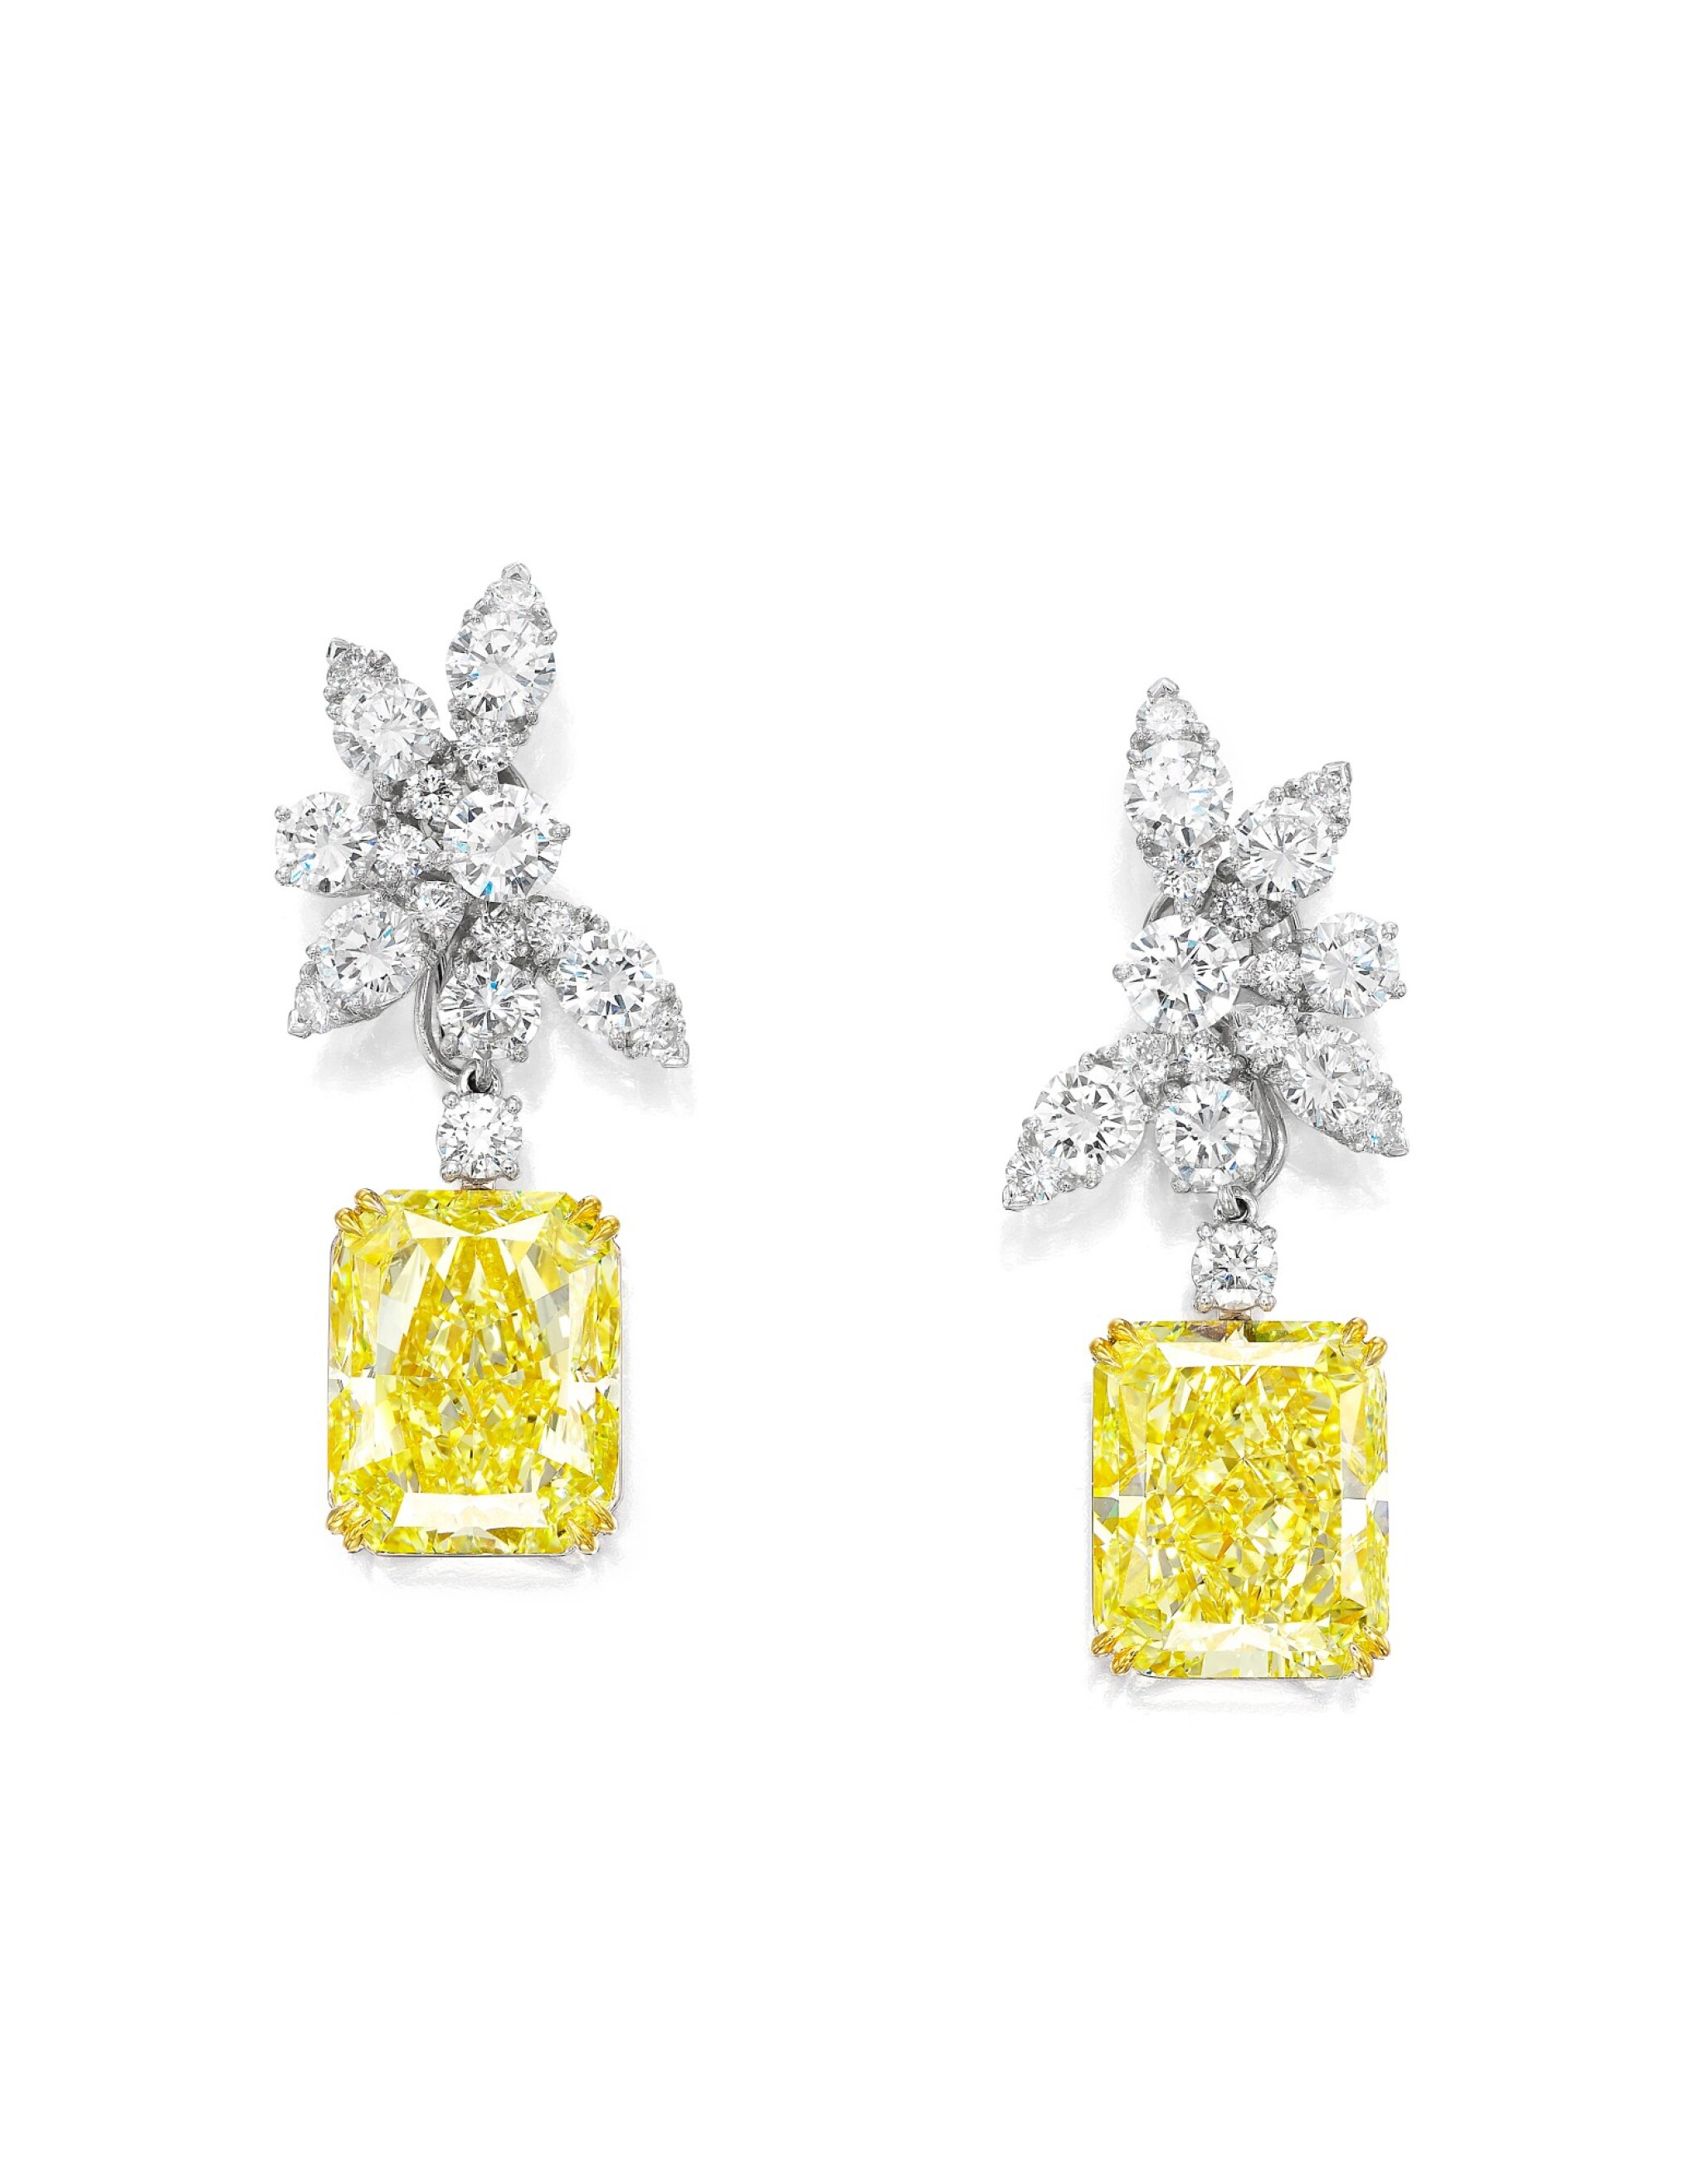 View full screen - View 1 of Lot 1717. PAIR OF FANCY YELLOW DIAMOND AND DIAMOND PENDENT EARRINGS, THE TOPS BY VAN CLEEF & ARPELS | 梵克雅寶 鑽石耳環 配 17.64及17.54卡拉 彩黃色 內部無瑕(IF)鑽石耳墜一對.